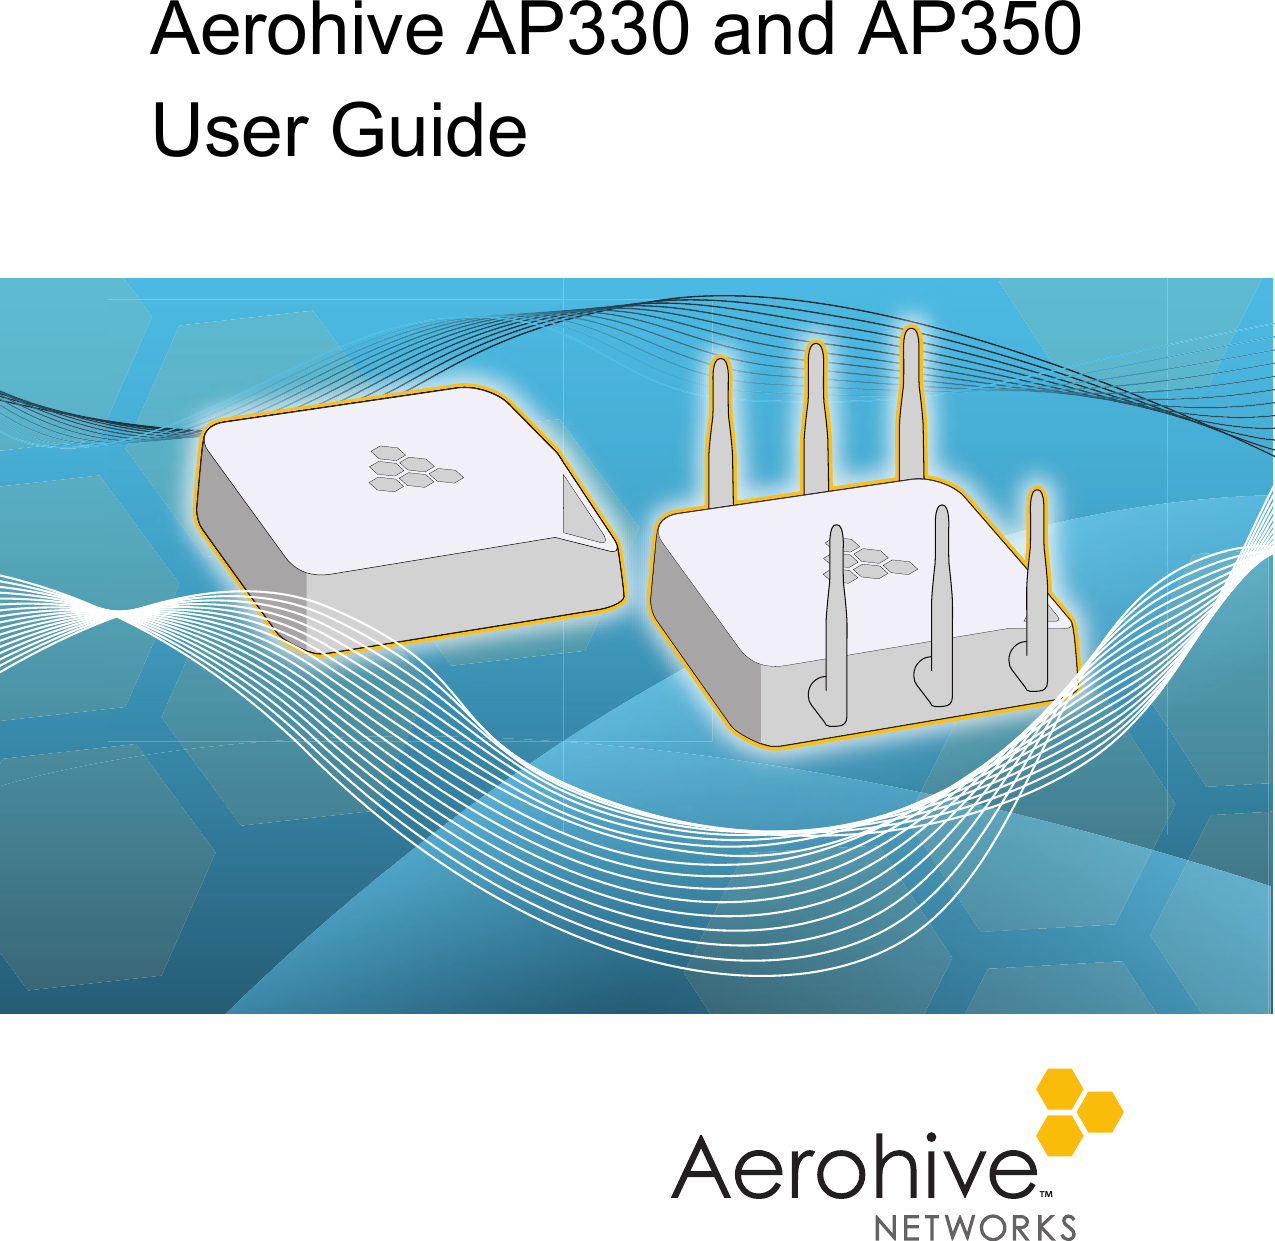 Aerohive Networks Hiveap350 Wireless Access Points User Manual Wall Phone Jack Wiring Diagram Likewise Eia Tia 568 C Ap330 And Ap350 Guide